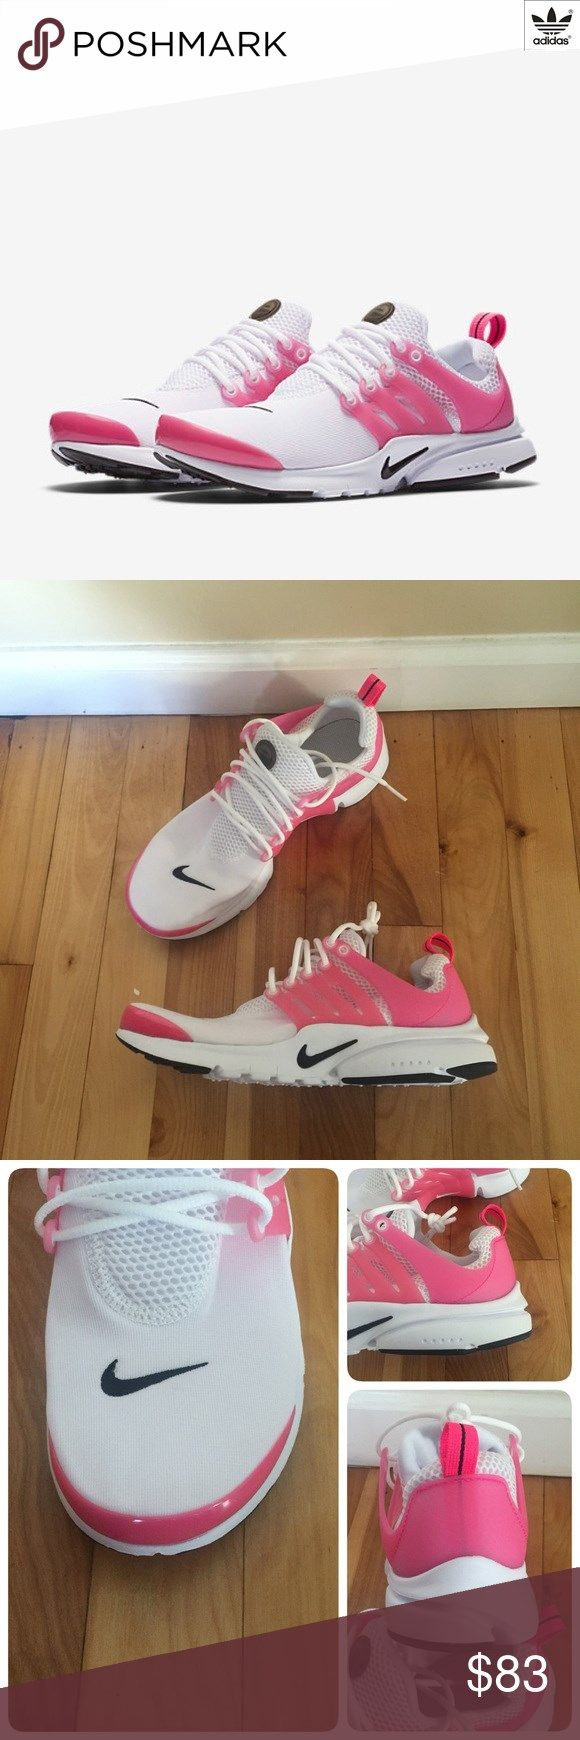 6048114a1daf New NIKE Presto GS ~ wht blk pk ~ 7Y 9W brand new no lid size 7Y (fits  womens 8.5-9) white black hyper pink comes from smoke free home Nike Shoes  Sneakers